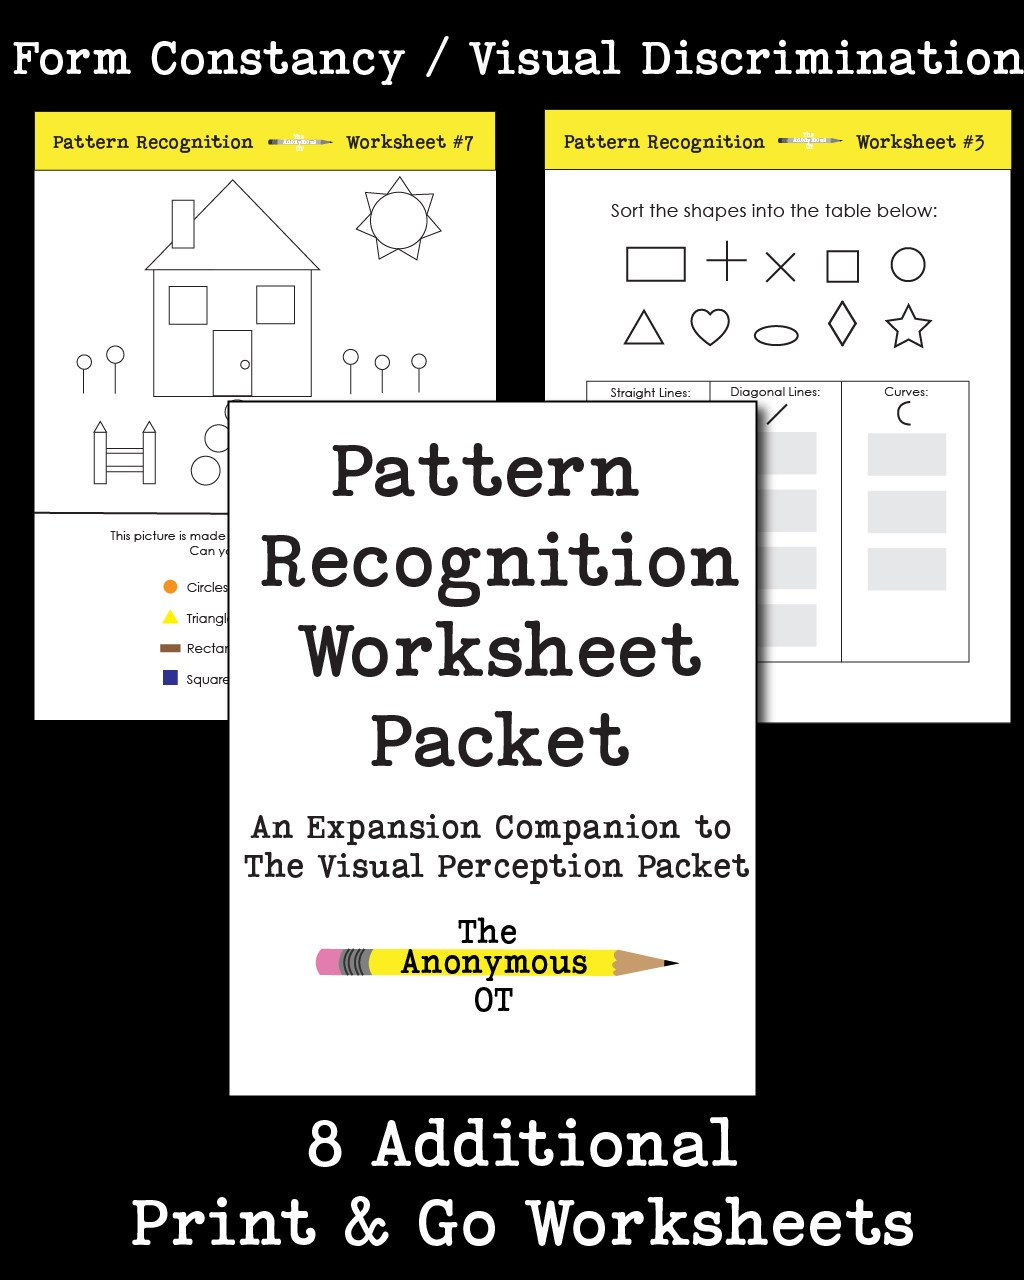 The Pattern Recognition Worksheet Packet - Your Therapy Source - Free Printable Form Constancy Worksheets